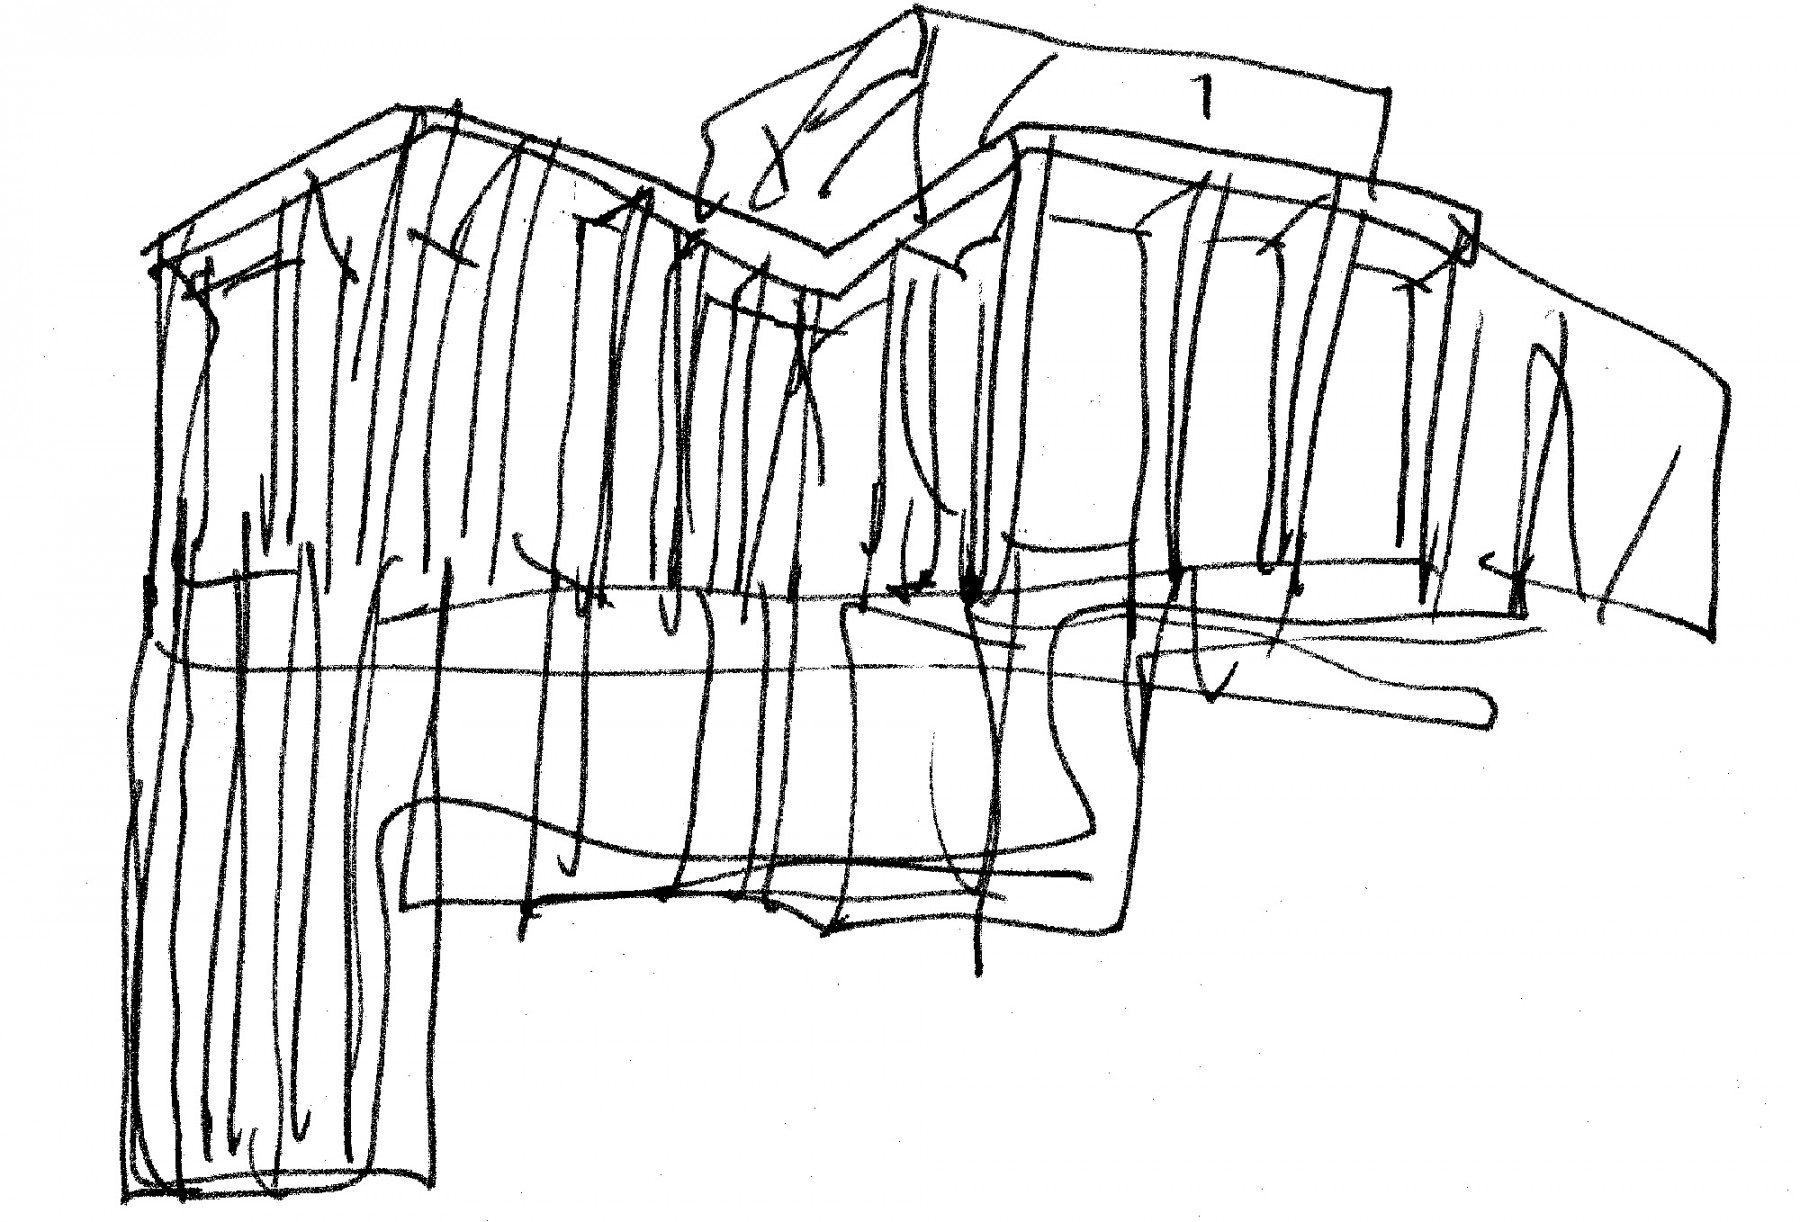 Jamie-Fobert-Architects-extension-to-Tate-St-Ives-sketch-rooftop-pavilion